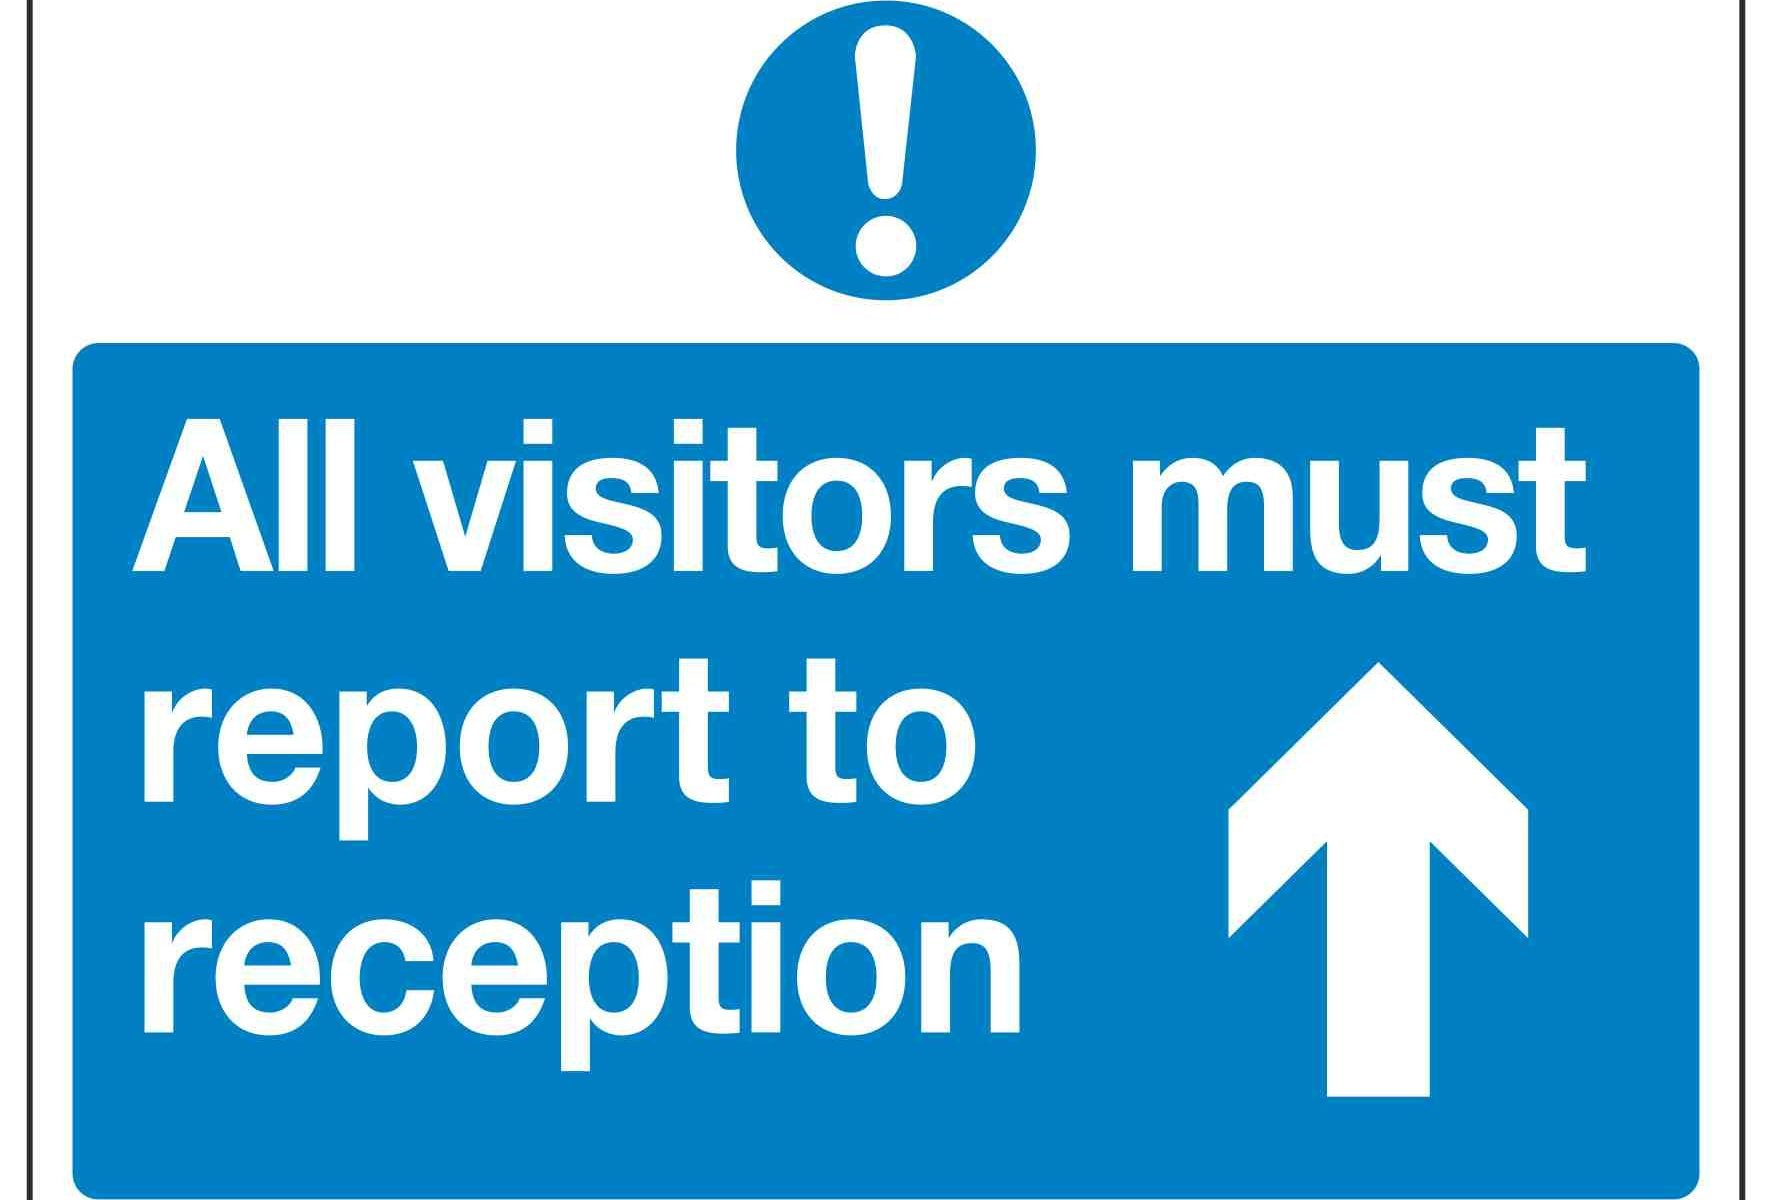 All visitors must report to reception (Arrow up)